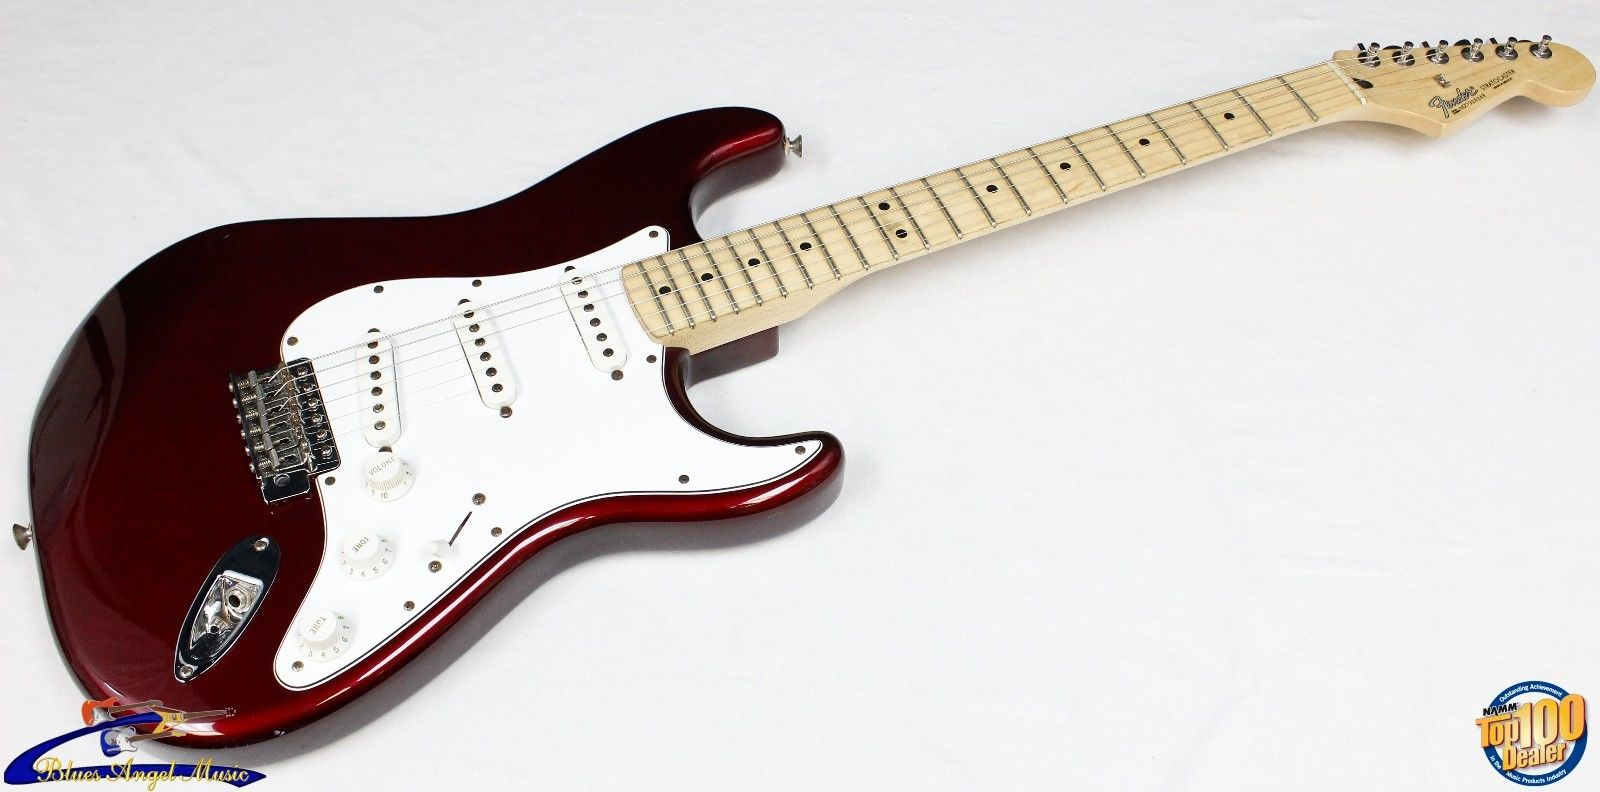 2007-2008 Fender Standard Stratocaster Made in Mexico Midnight Wine Strat #33505